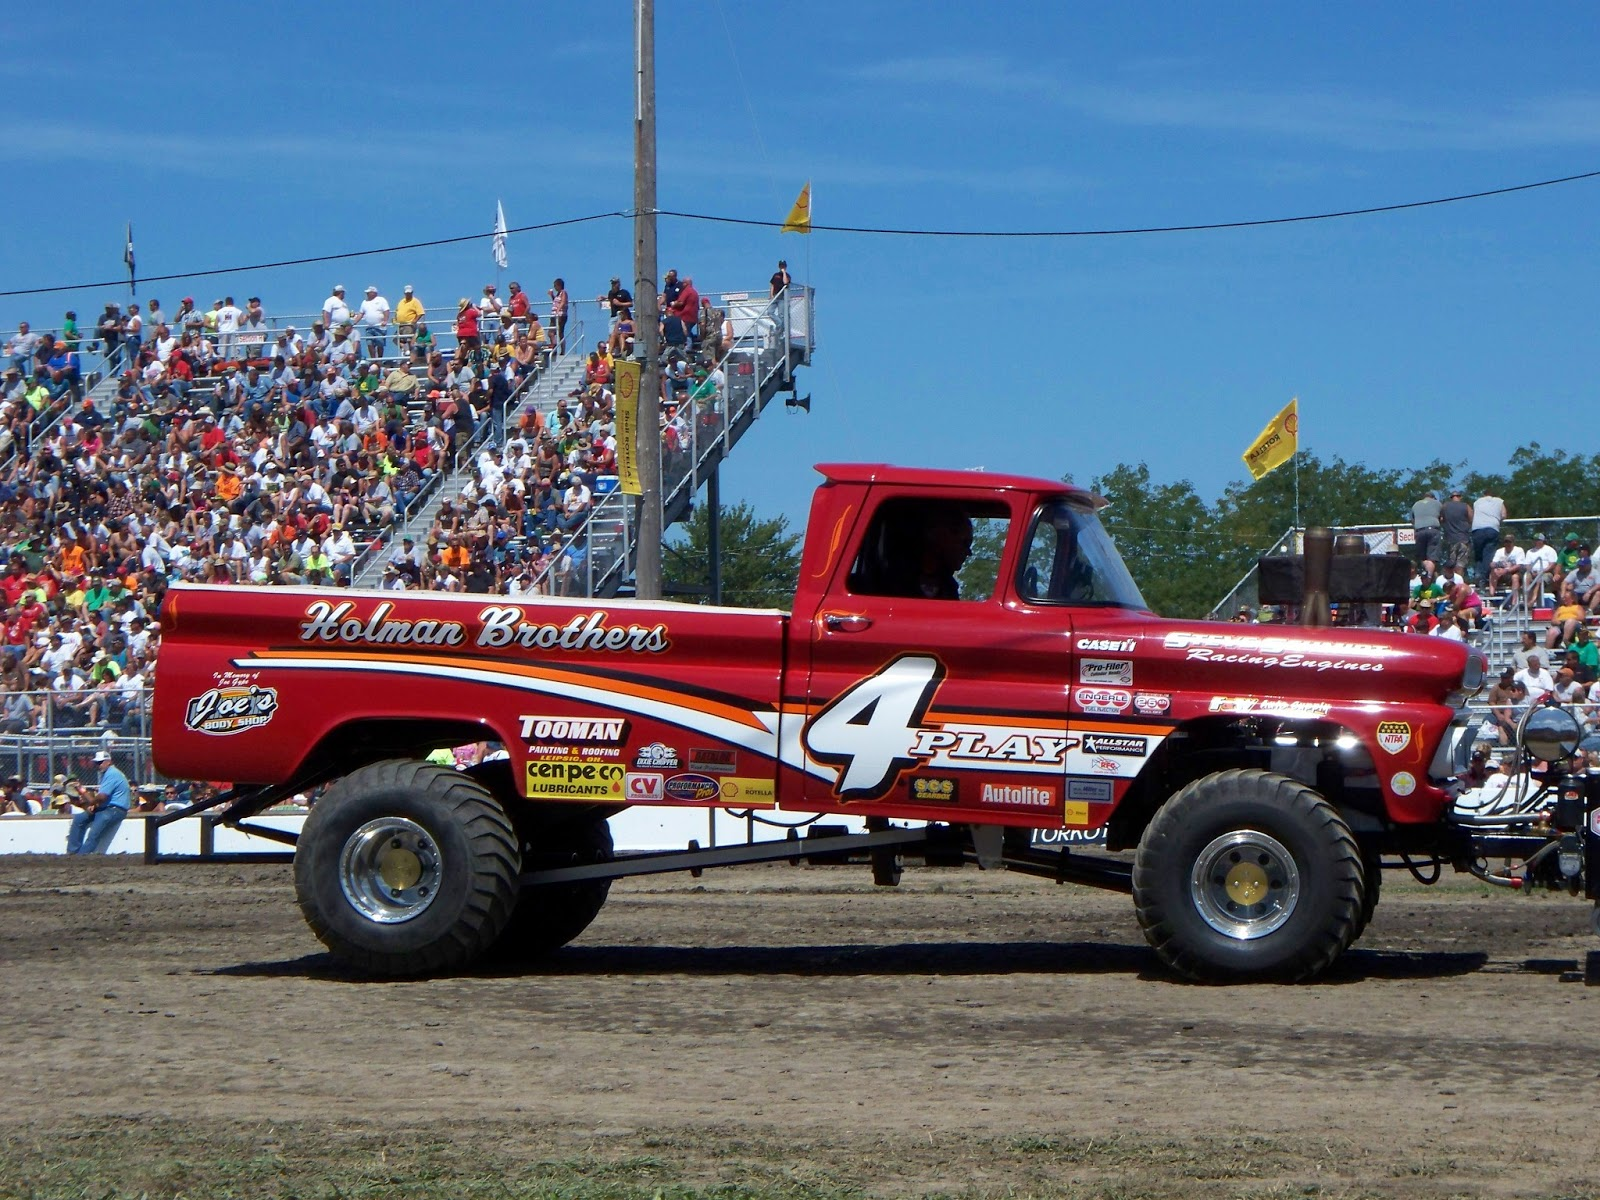 4x4 Truck And Tractors : Tractor pulling race racing hot rod rods pickup